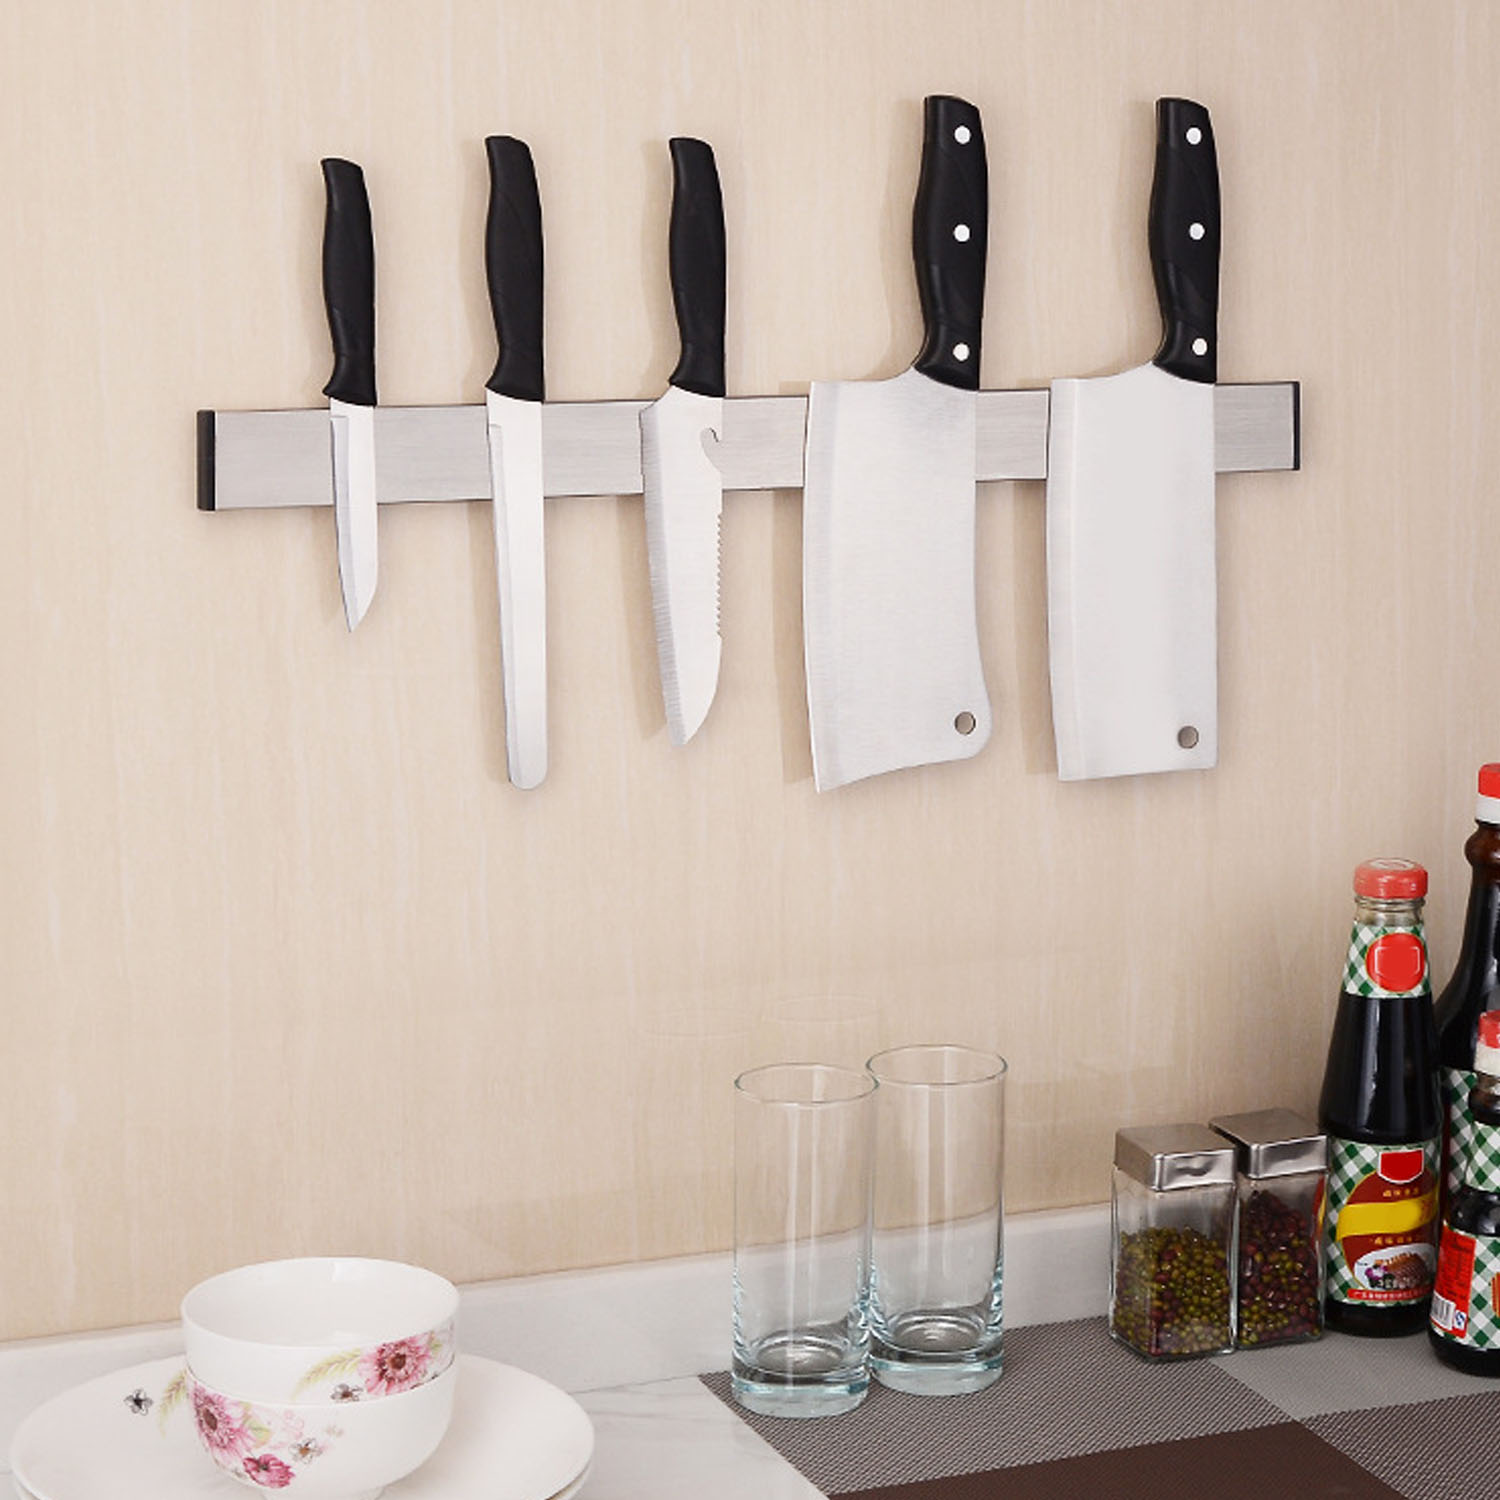 Behokic Magnetic Self adhesive 12 2 inches Length Knife Holder Stainless Steel Block Magnet Knife Holder